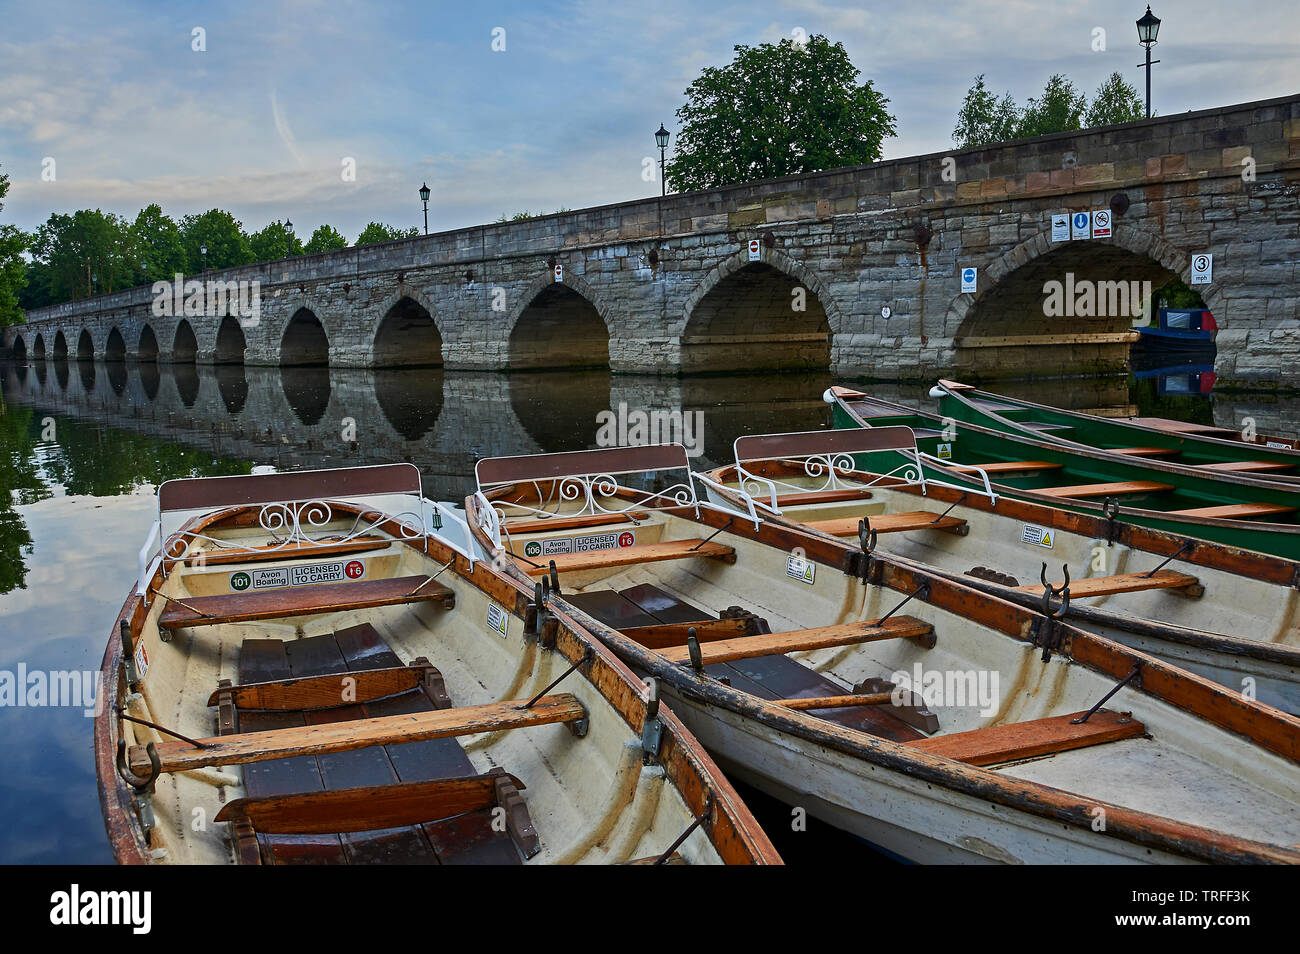 Stratford upon Avon, Warwickshire and boats moored on the River Avon early on a summer morning. - Stock Image